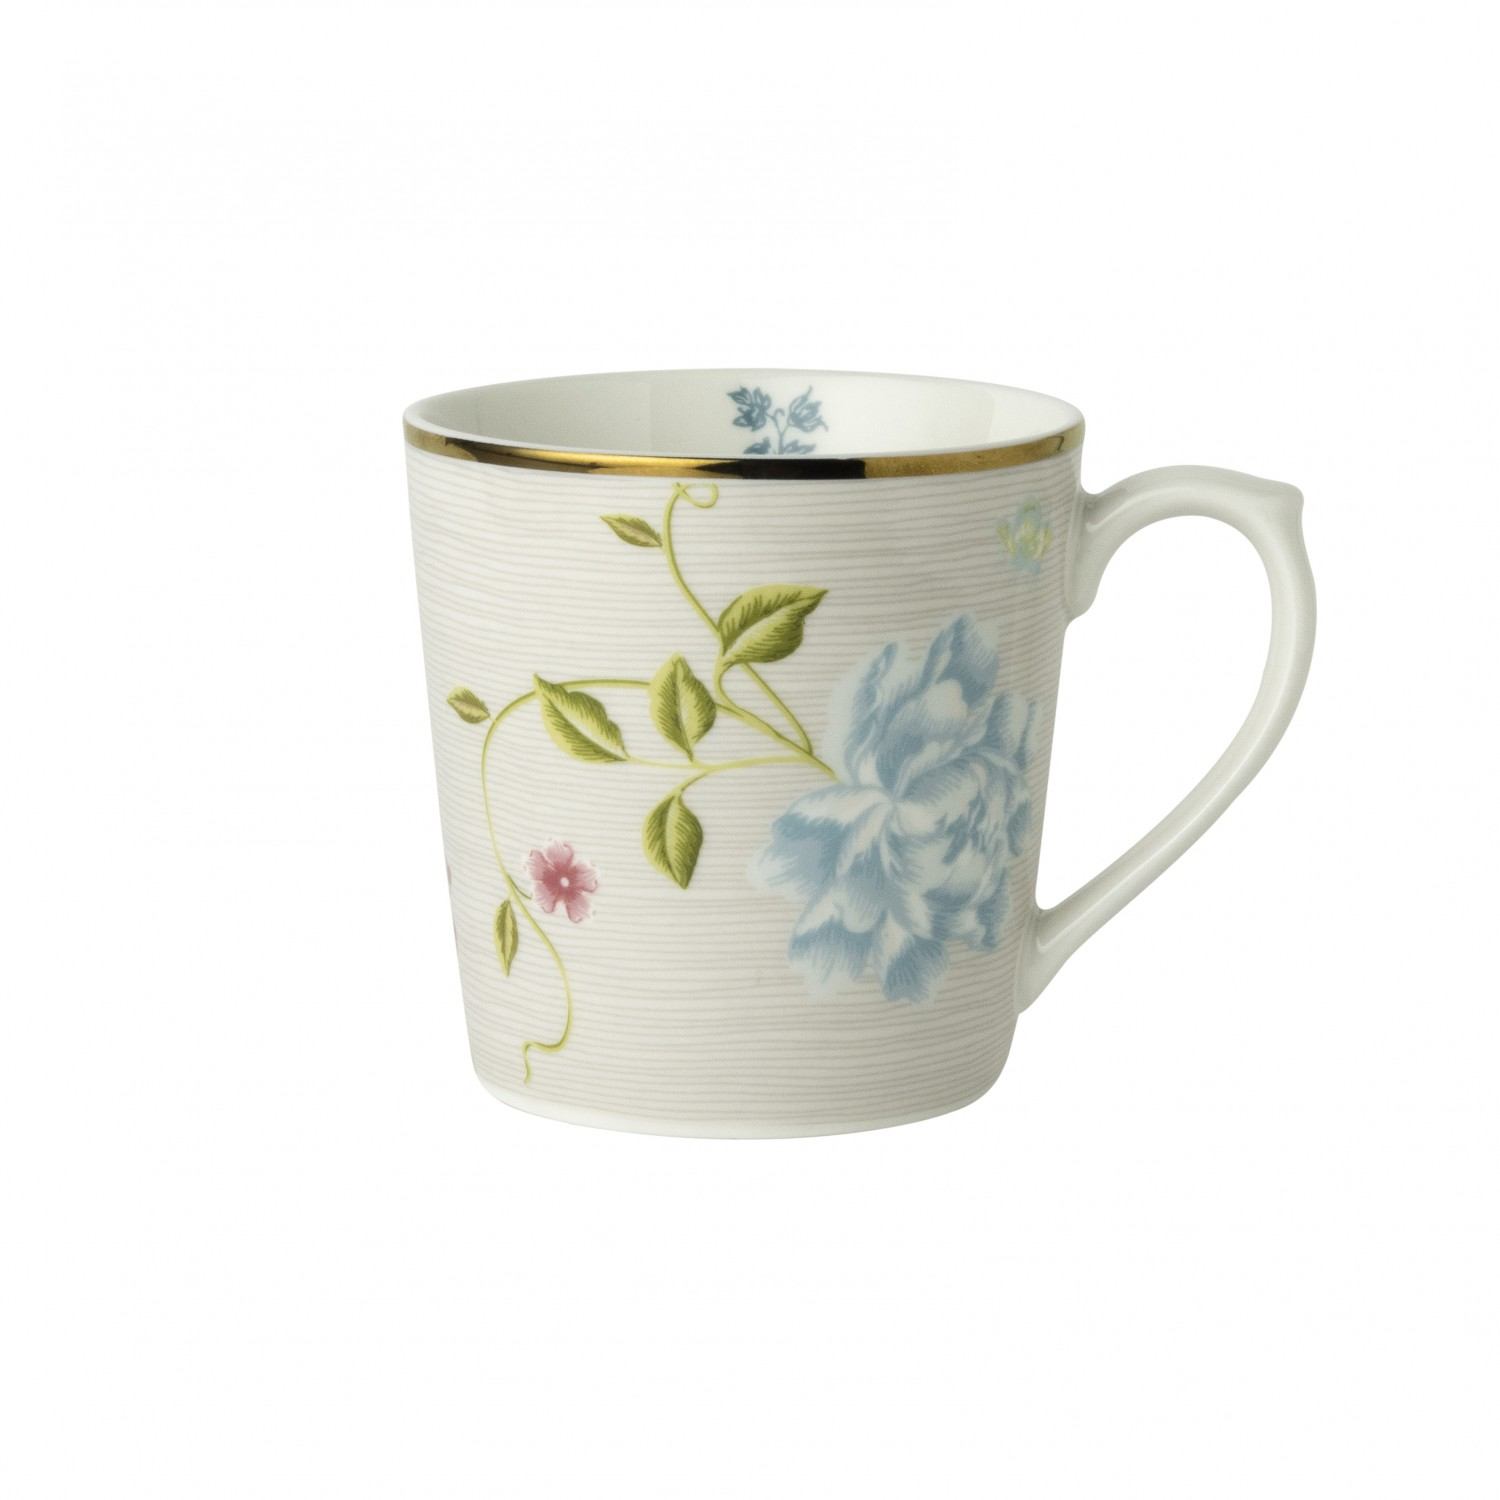 Laura-Ashley-mug-cobblestone-Pinstripe-beker-180512-v